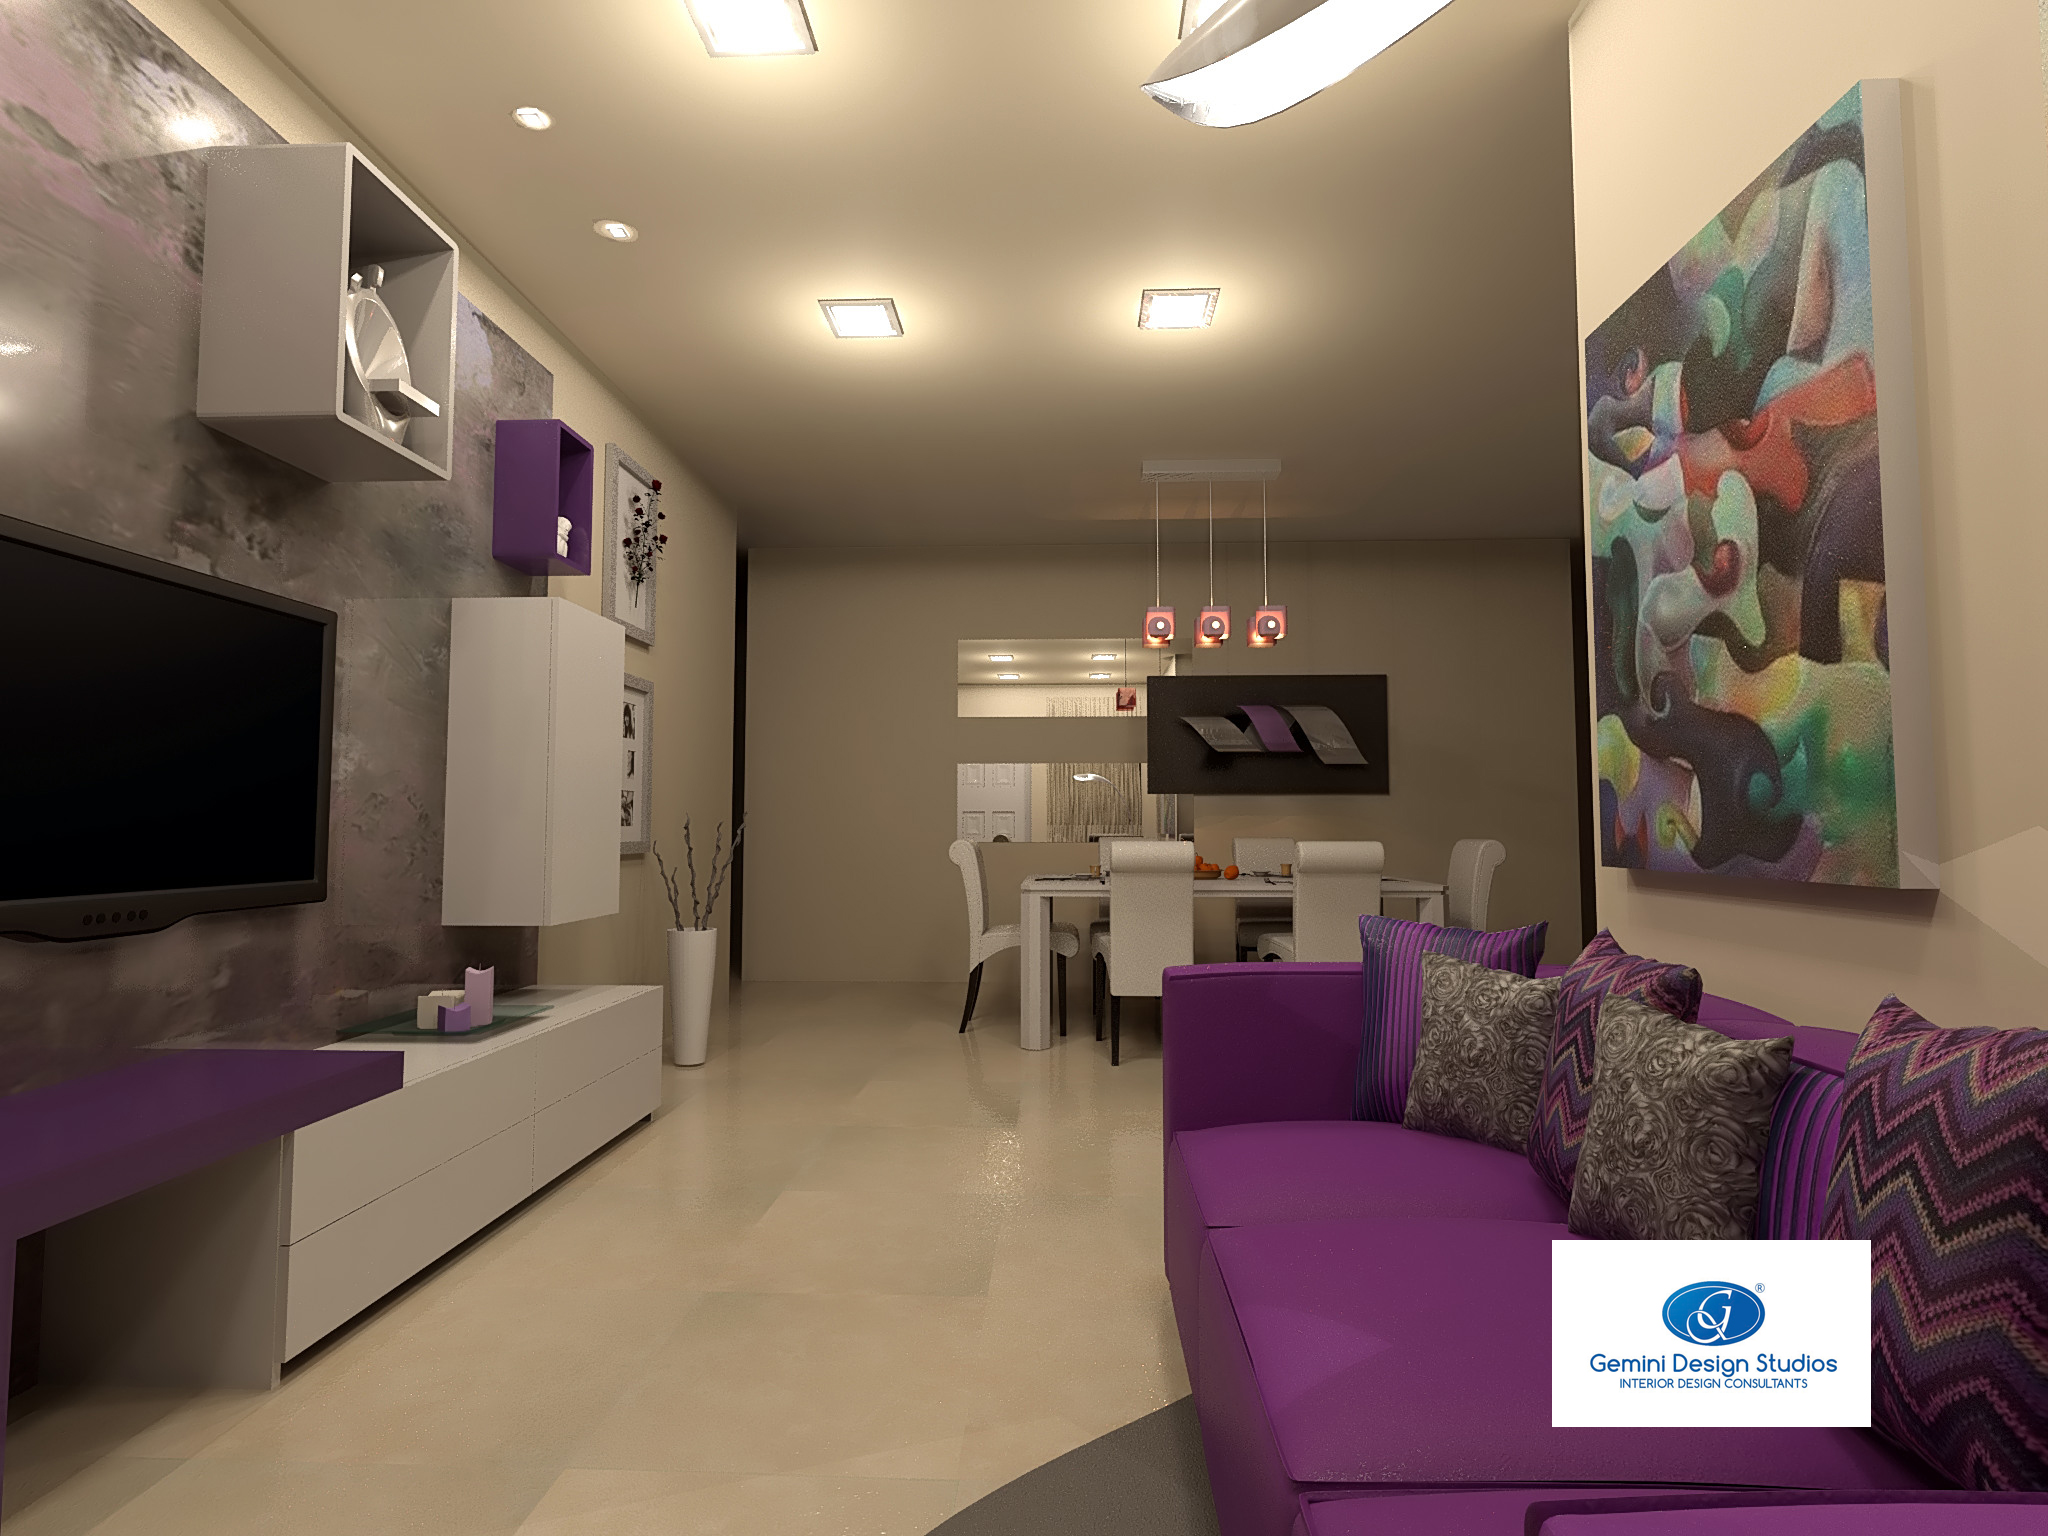 DESIGNING A LIVING ROOM WITH PURPLE TONES